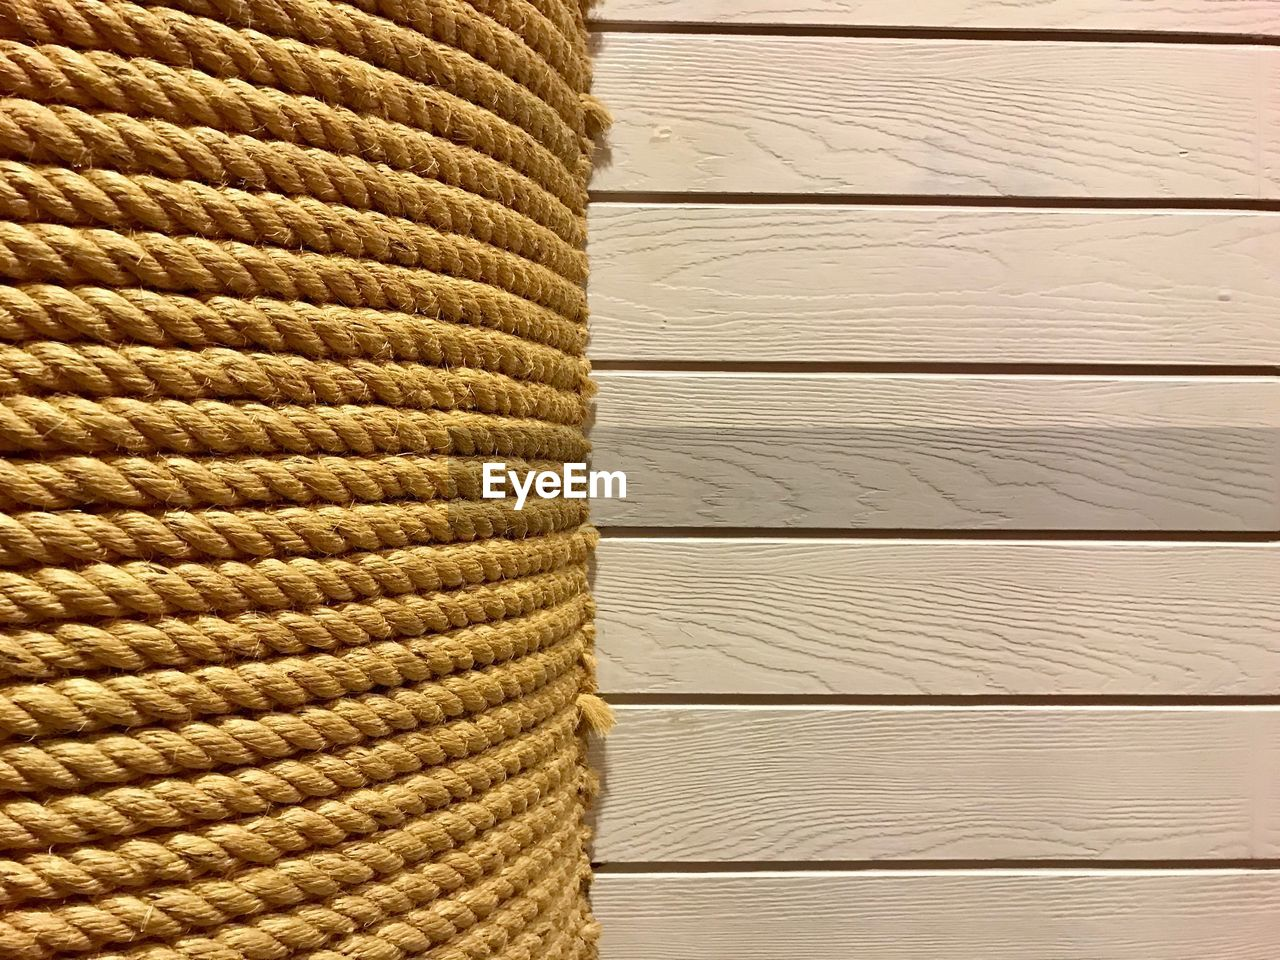 pattern, no people, backgrounds, textured, close-up, wicker, full frame, textile, indoors, brown, wood - material, basket, day, material, mat, art and craft, container, detail, beige